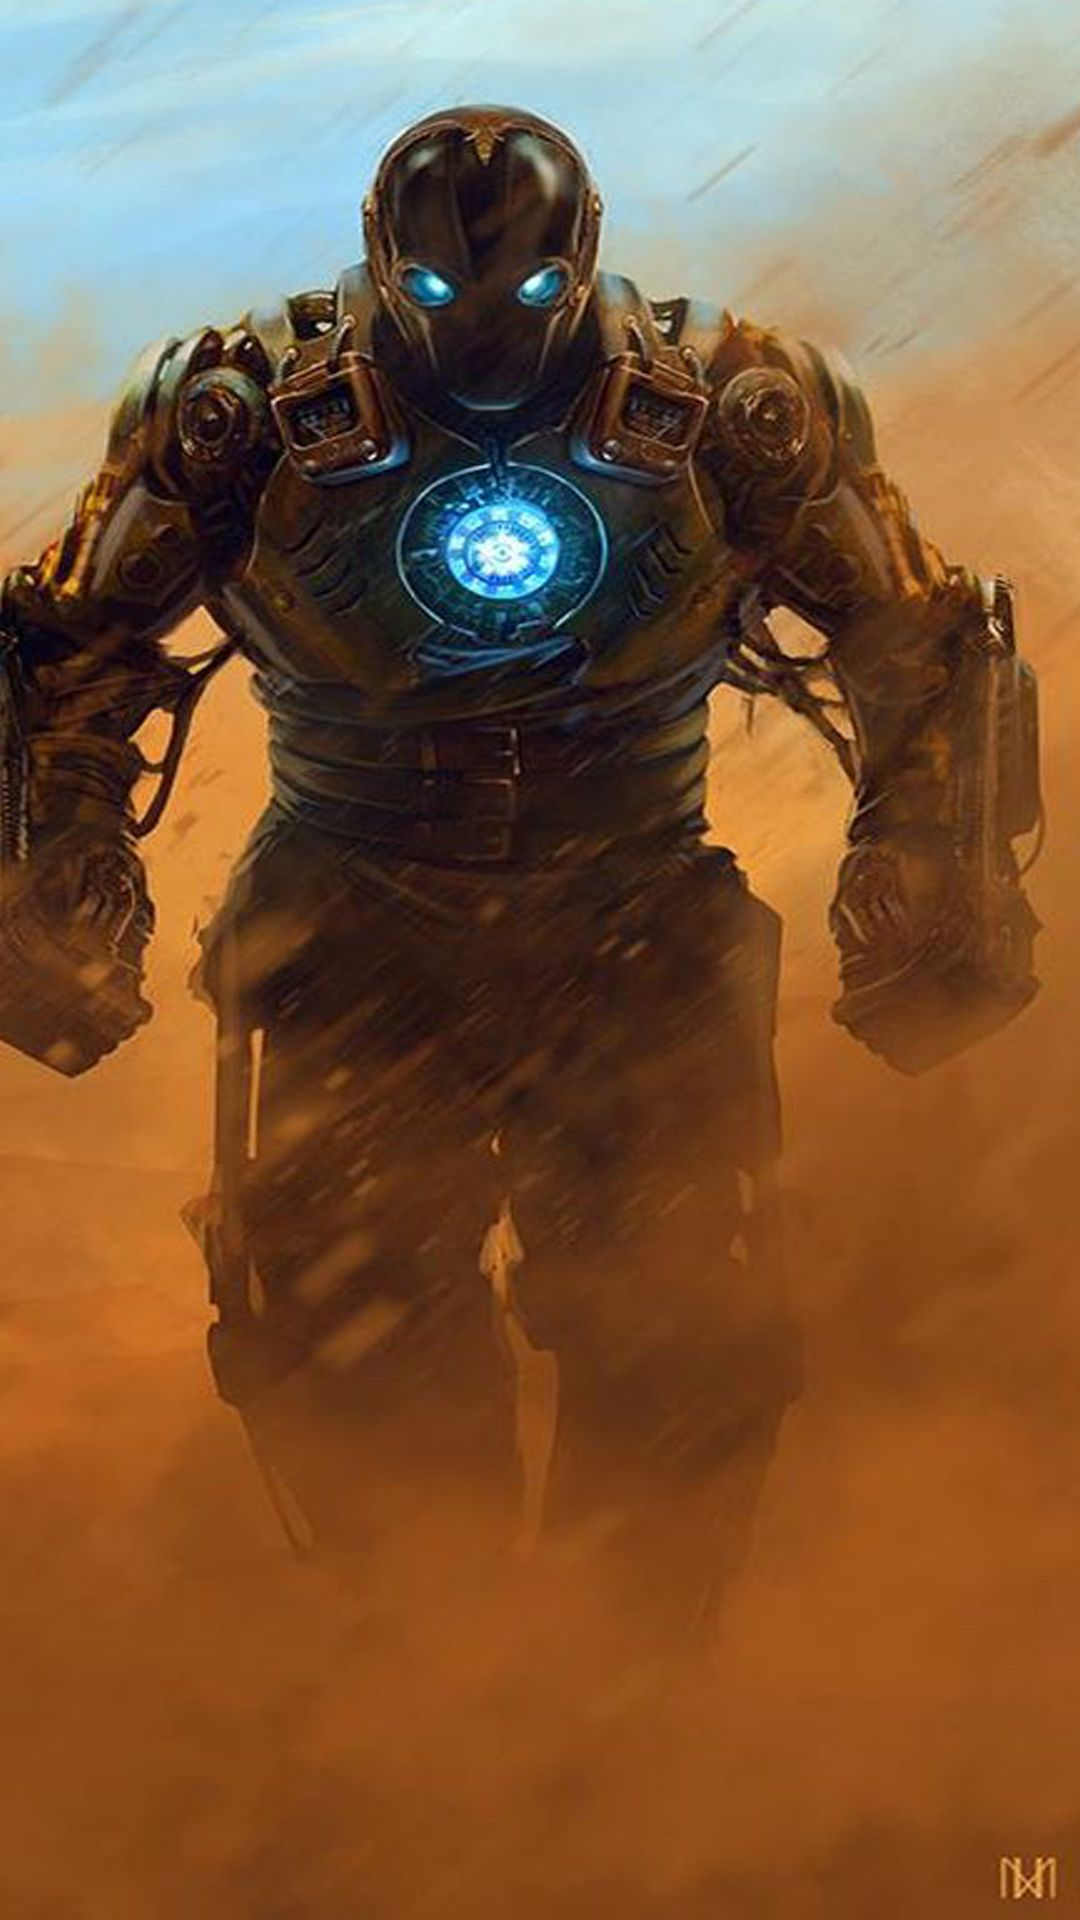 Iron man iphone wallpaper tumblr -  Iphone Wallpaper Tumblr 466 Steampunk Iron Man